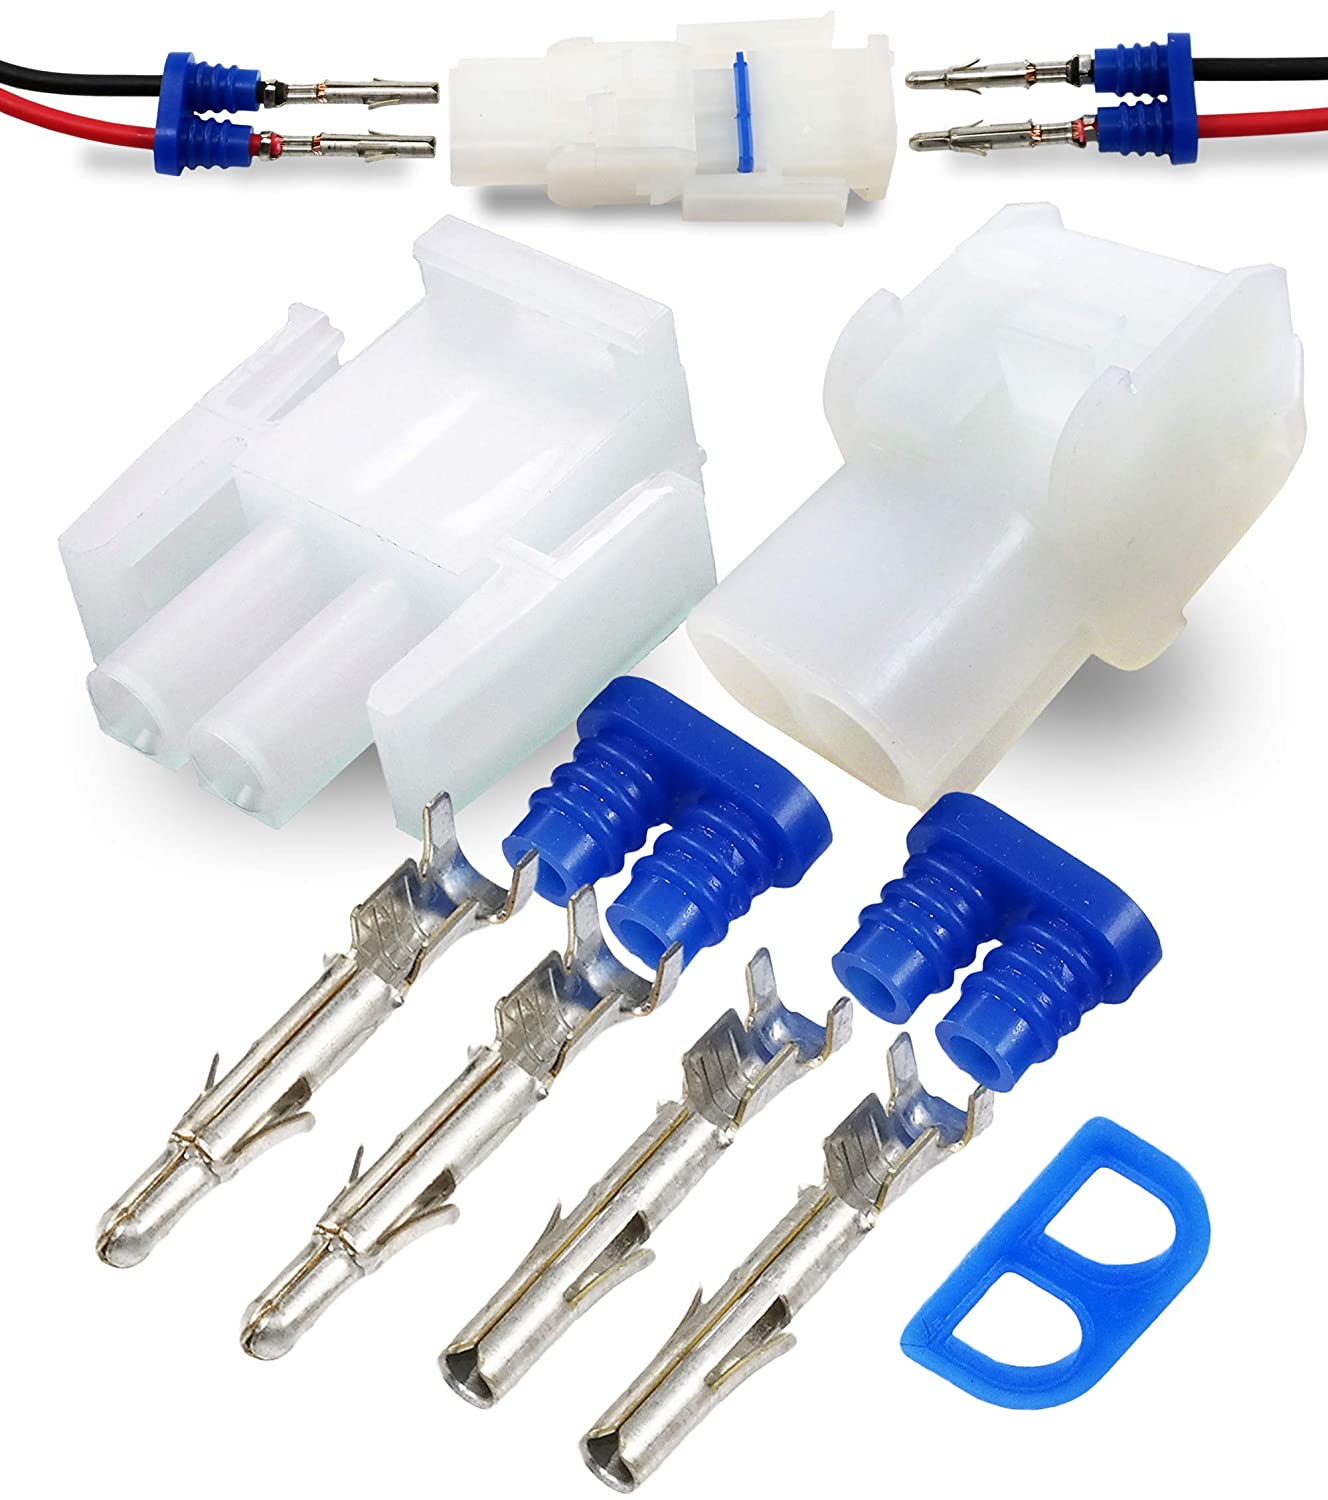 211 Piece Set Cat AMP//TYCO Mate-N-LOK White CONNECTORS Auto TERMINALS and PIC Tool with Seal Ultima